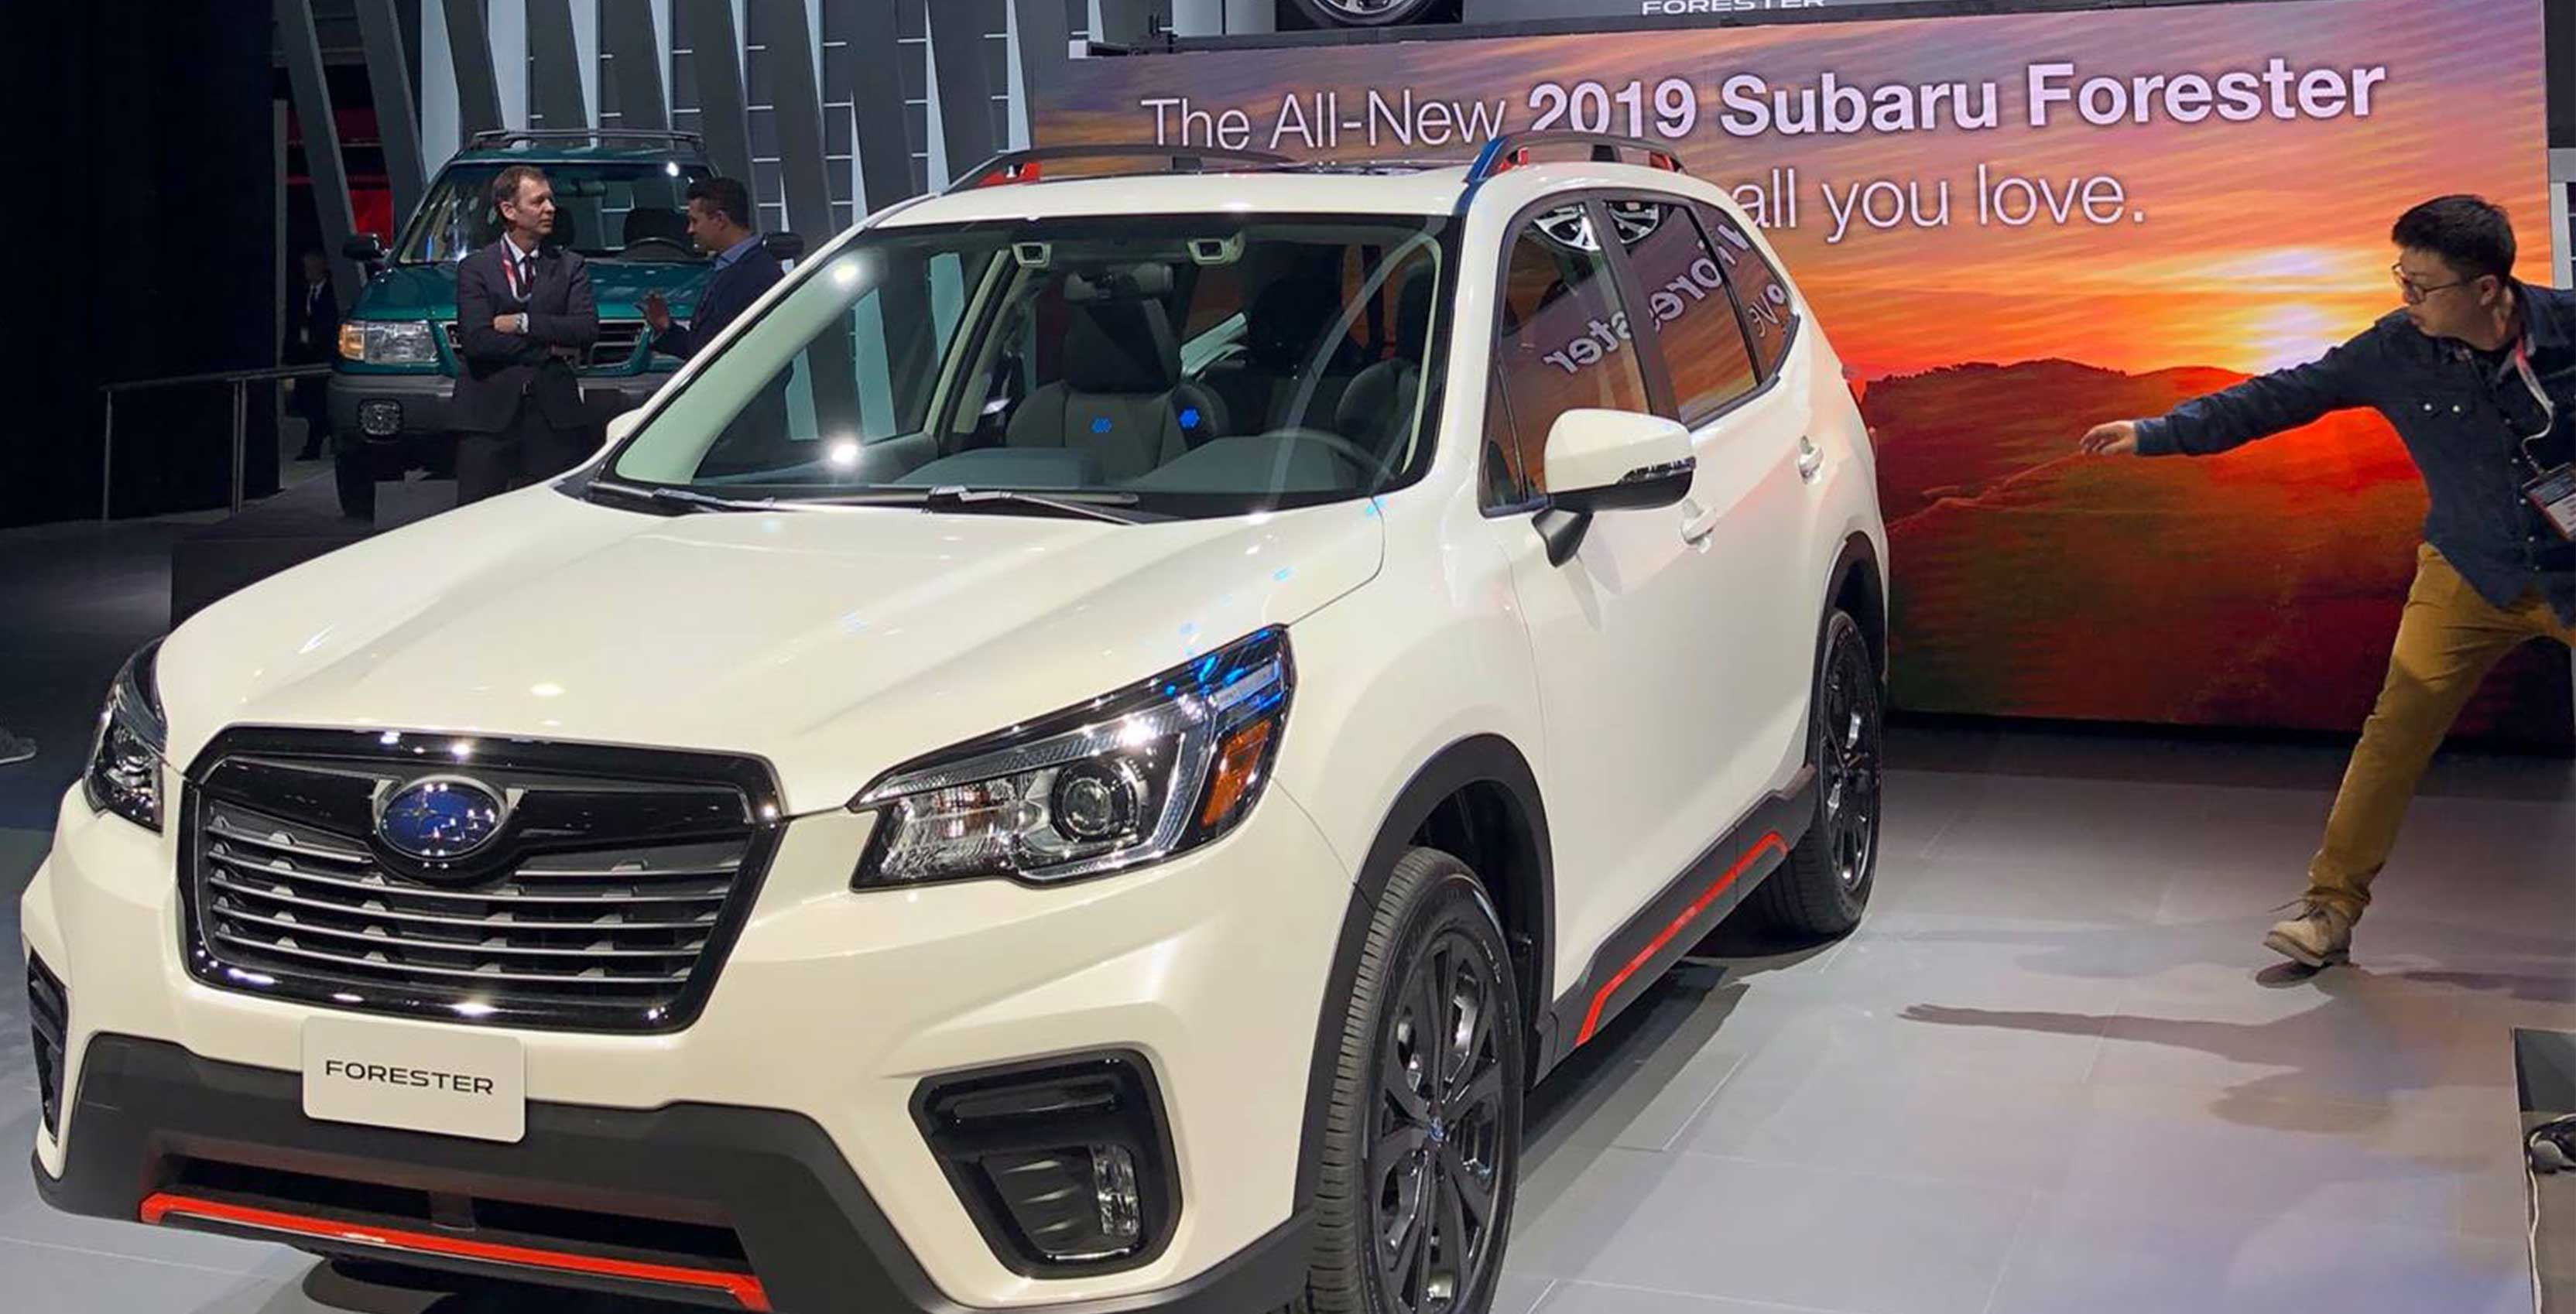 Subaru is using facial recognition in its new Forester to detect